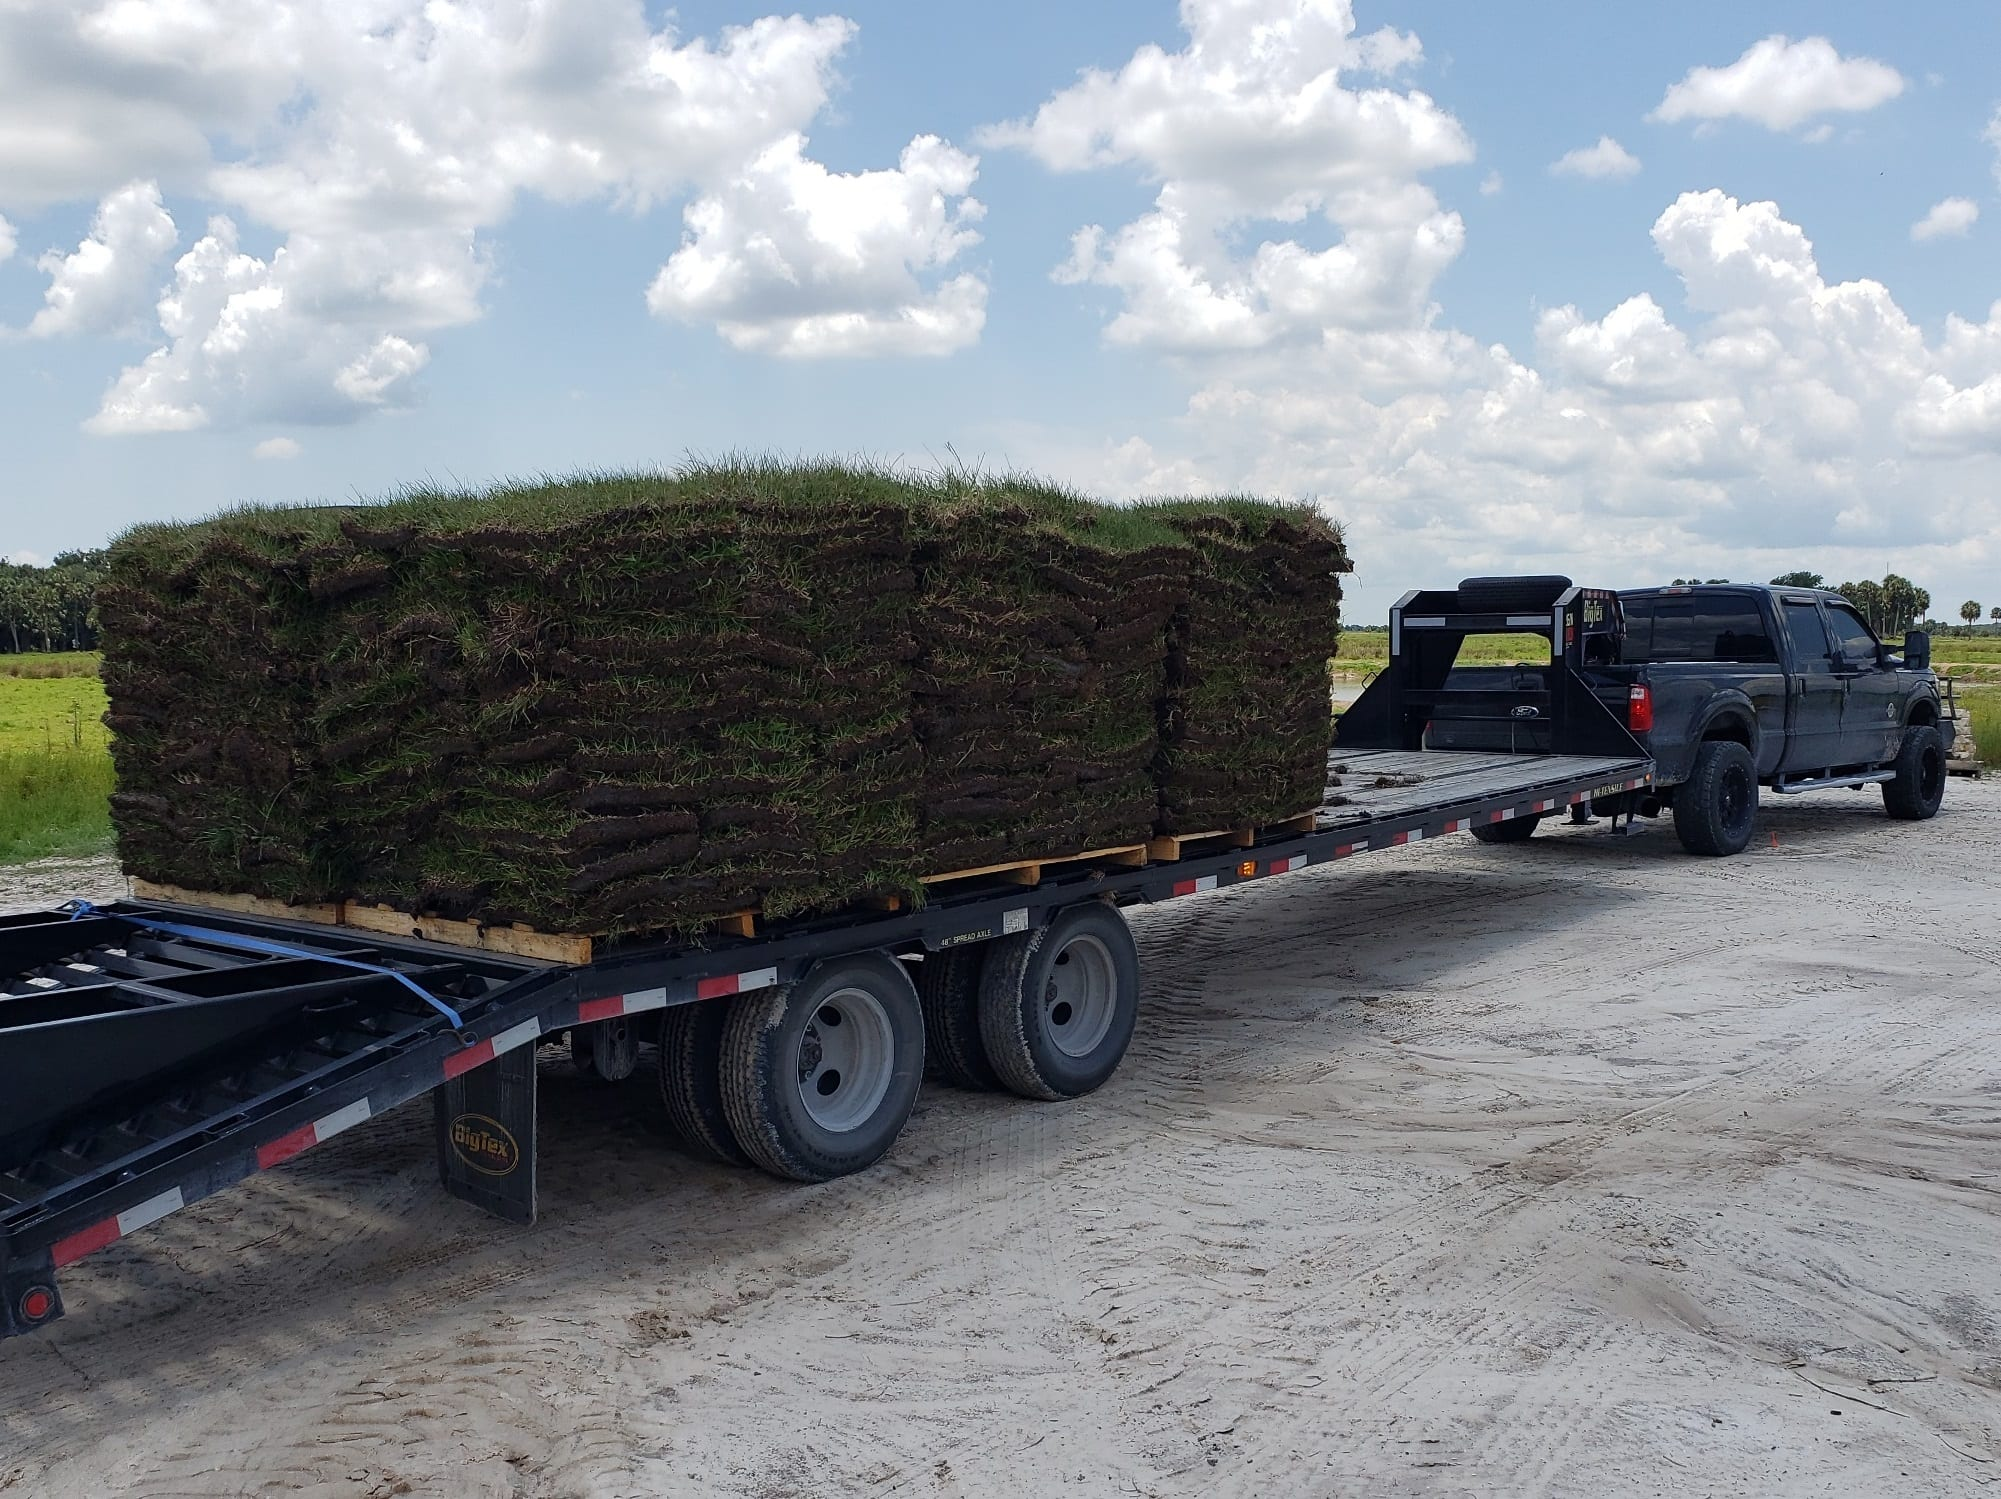 Sod Hauling $3 per loaded mile